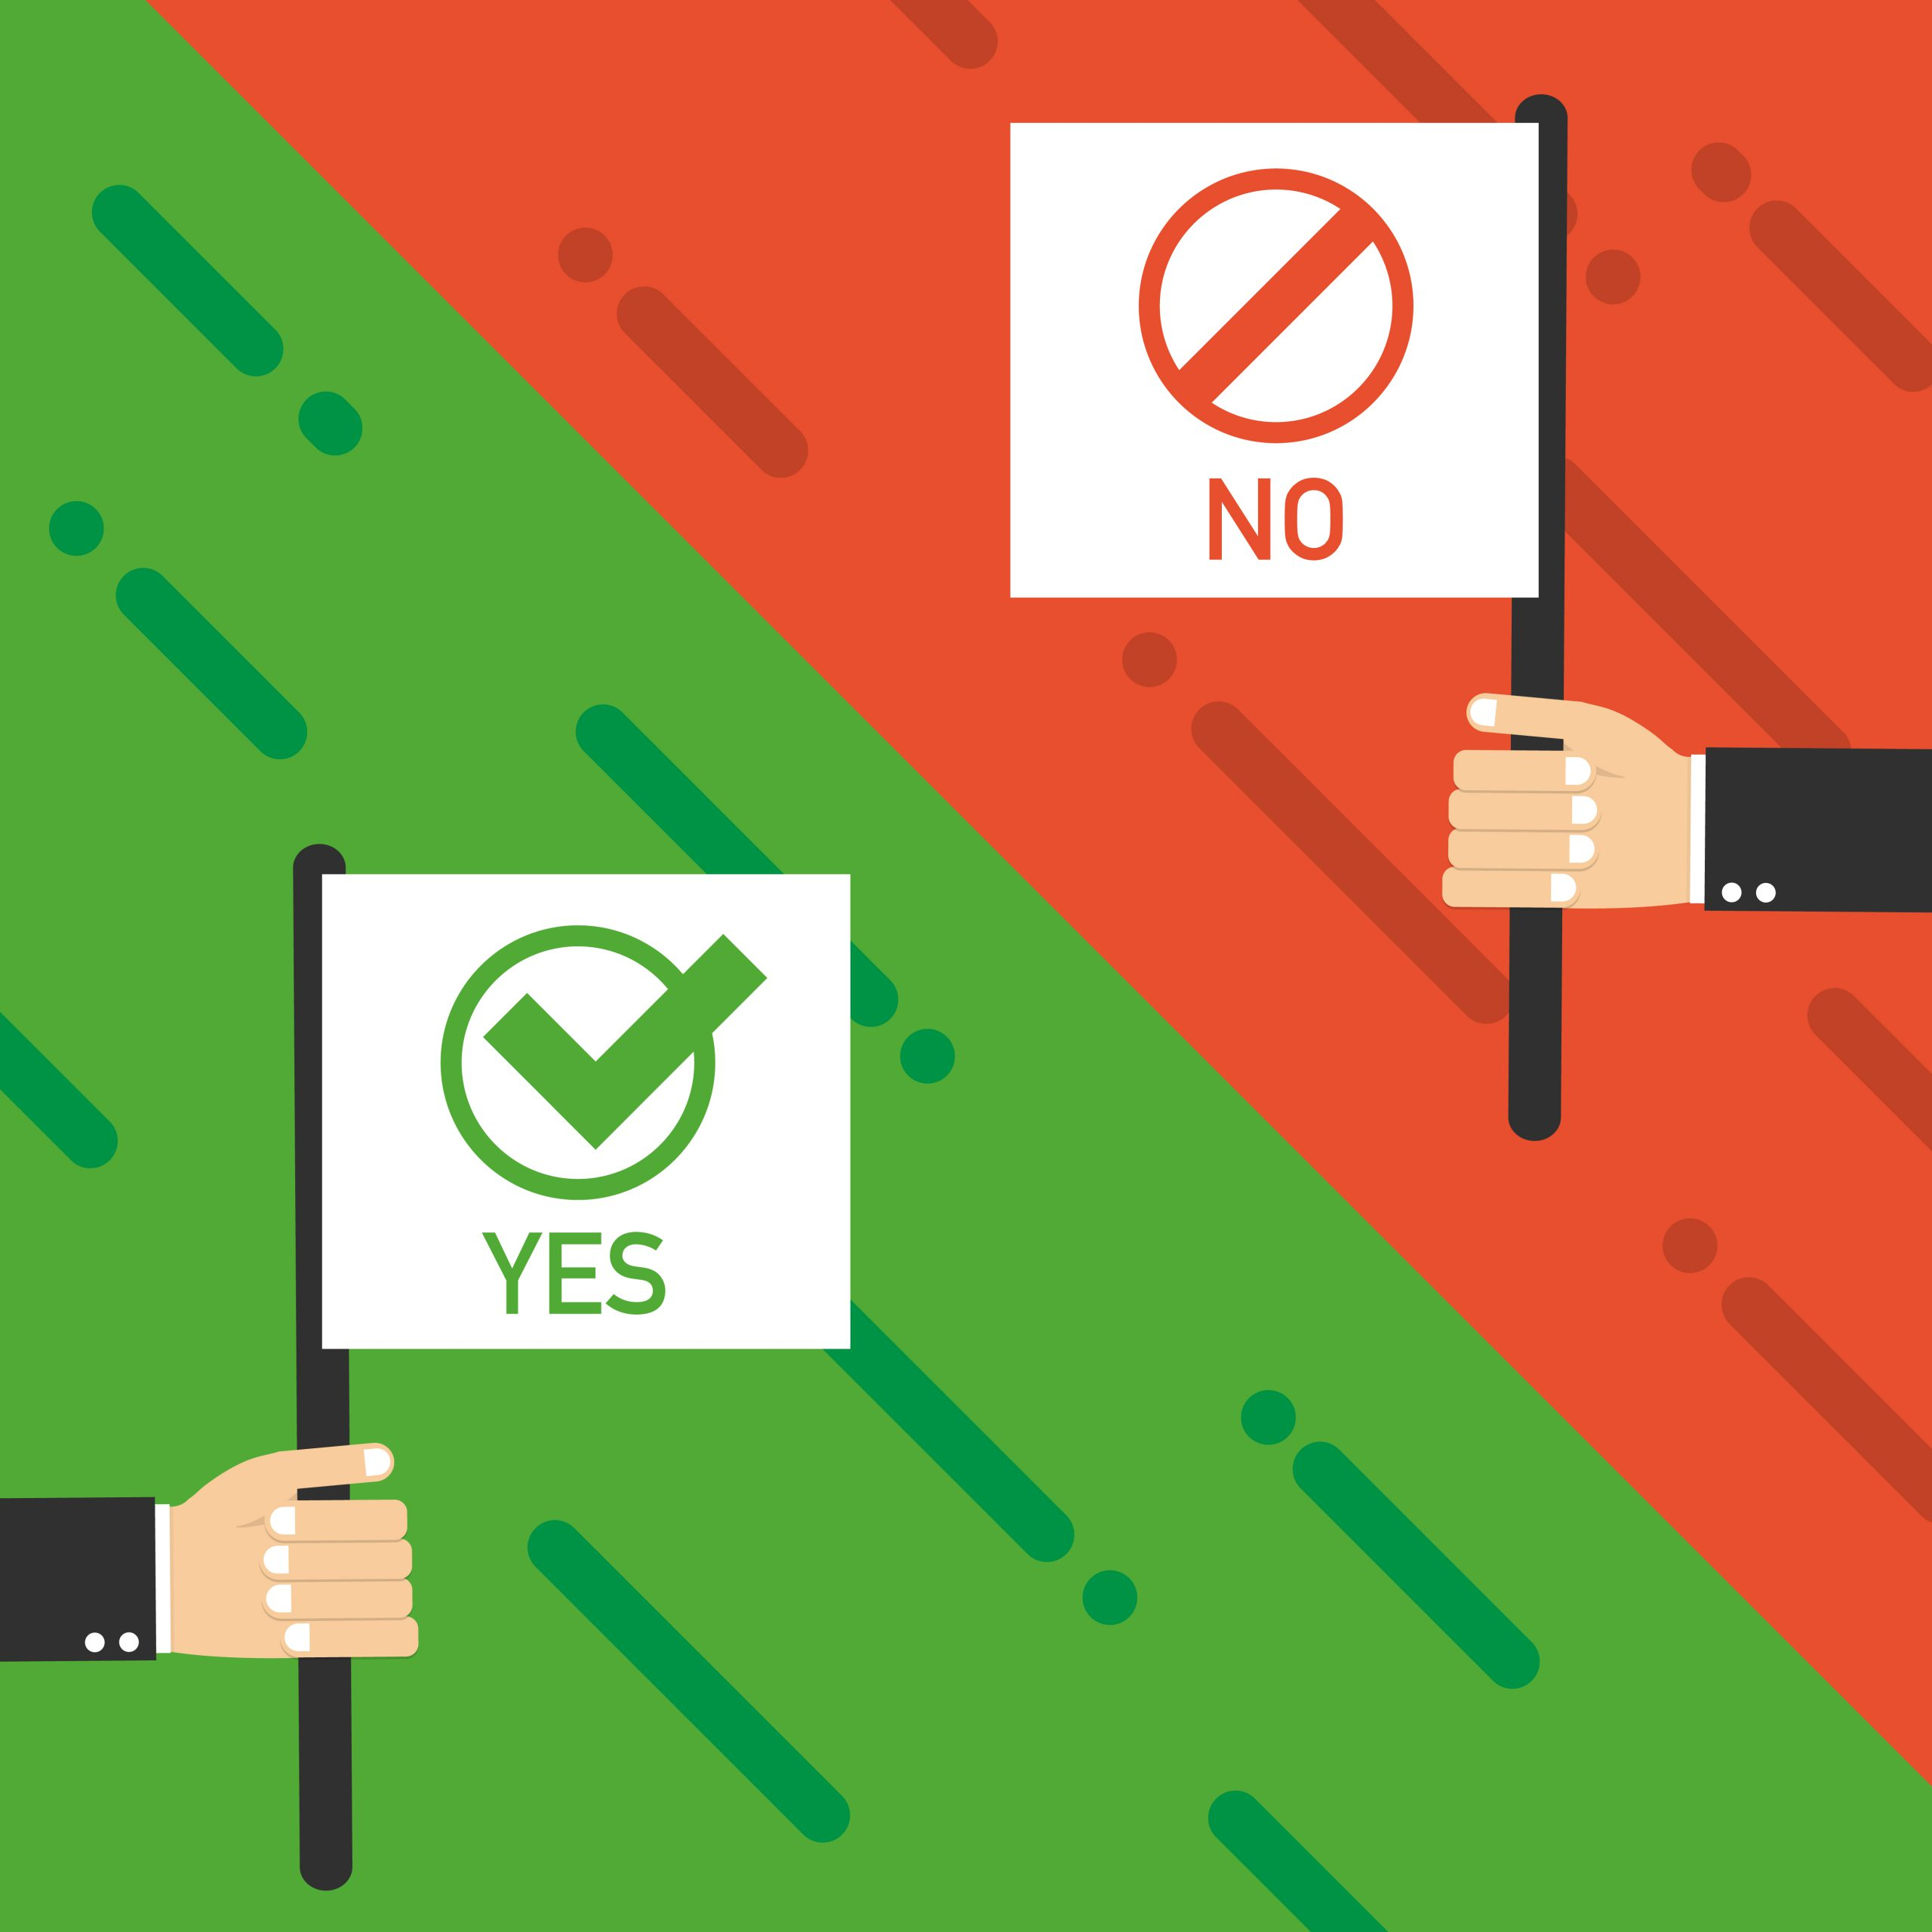 Flags Yes and No. Vector - choose the right school management software - illustration